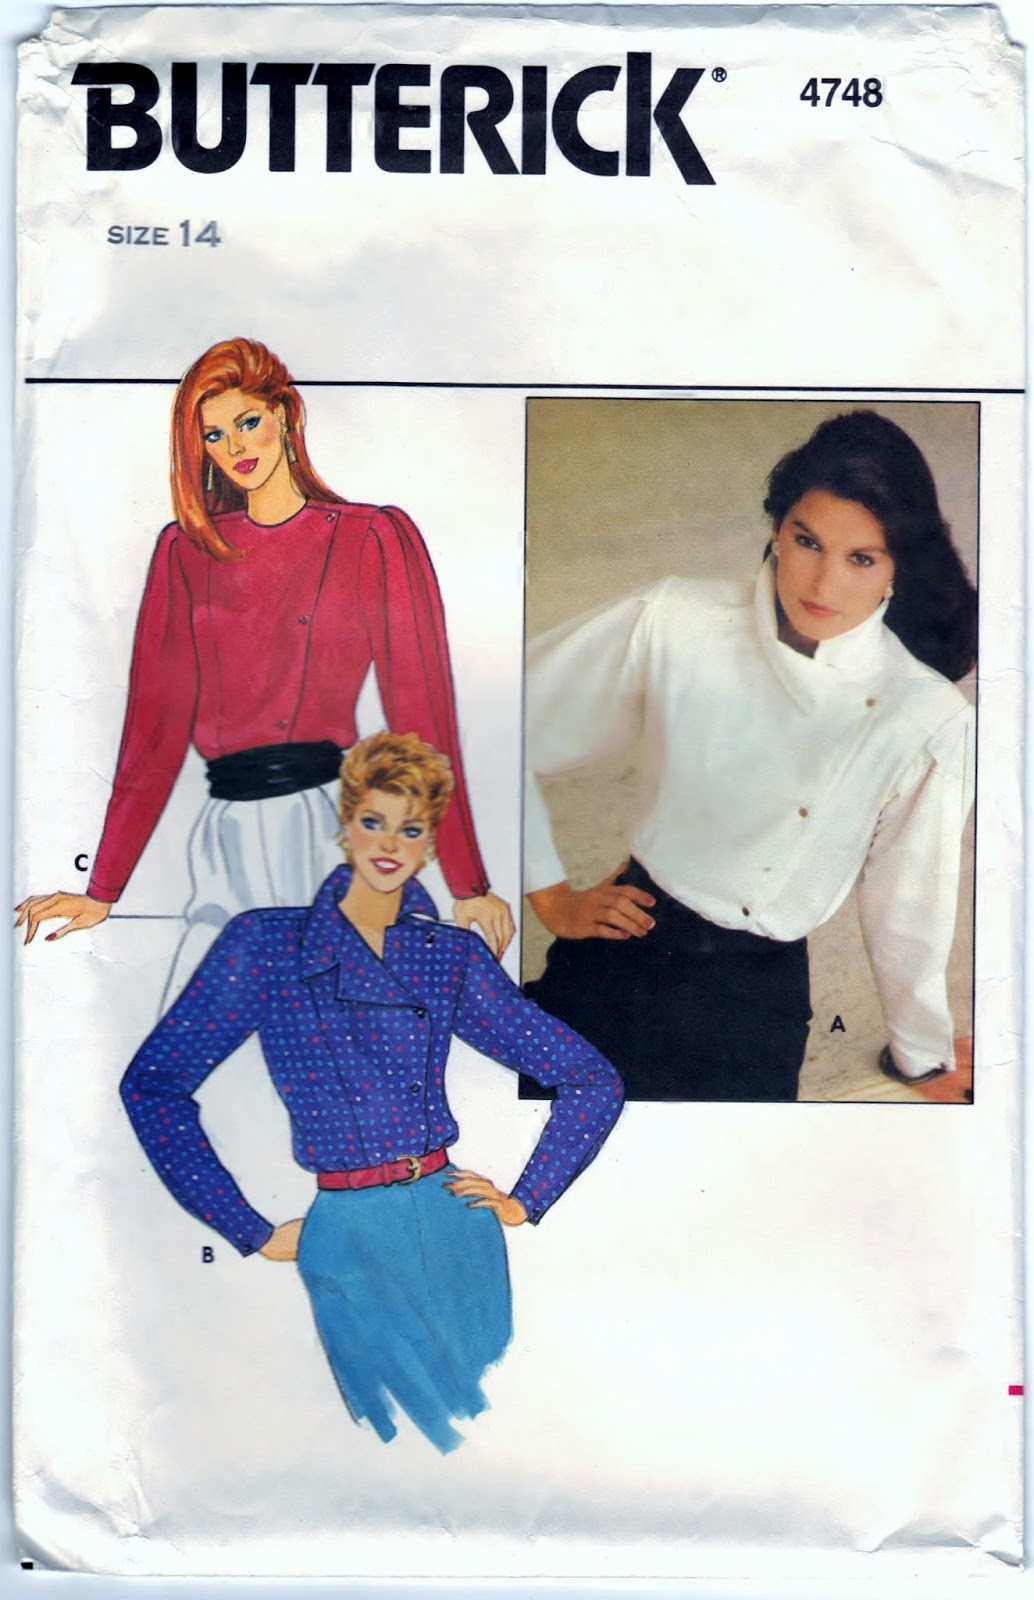 https://www.etsy.com/listing/222931077/vintage-butterick-4748-sewing-craft?ref=shop_home_active_1